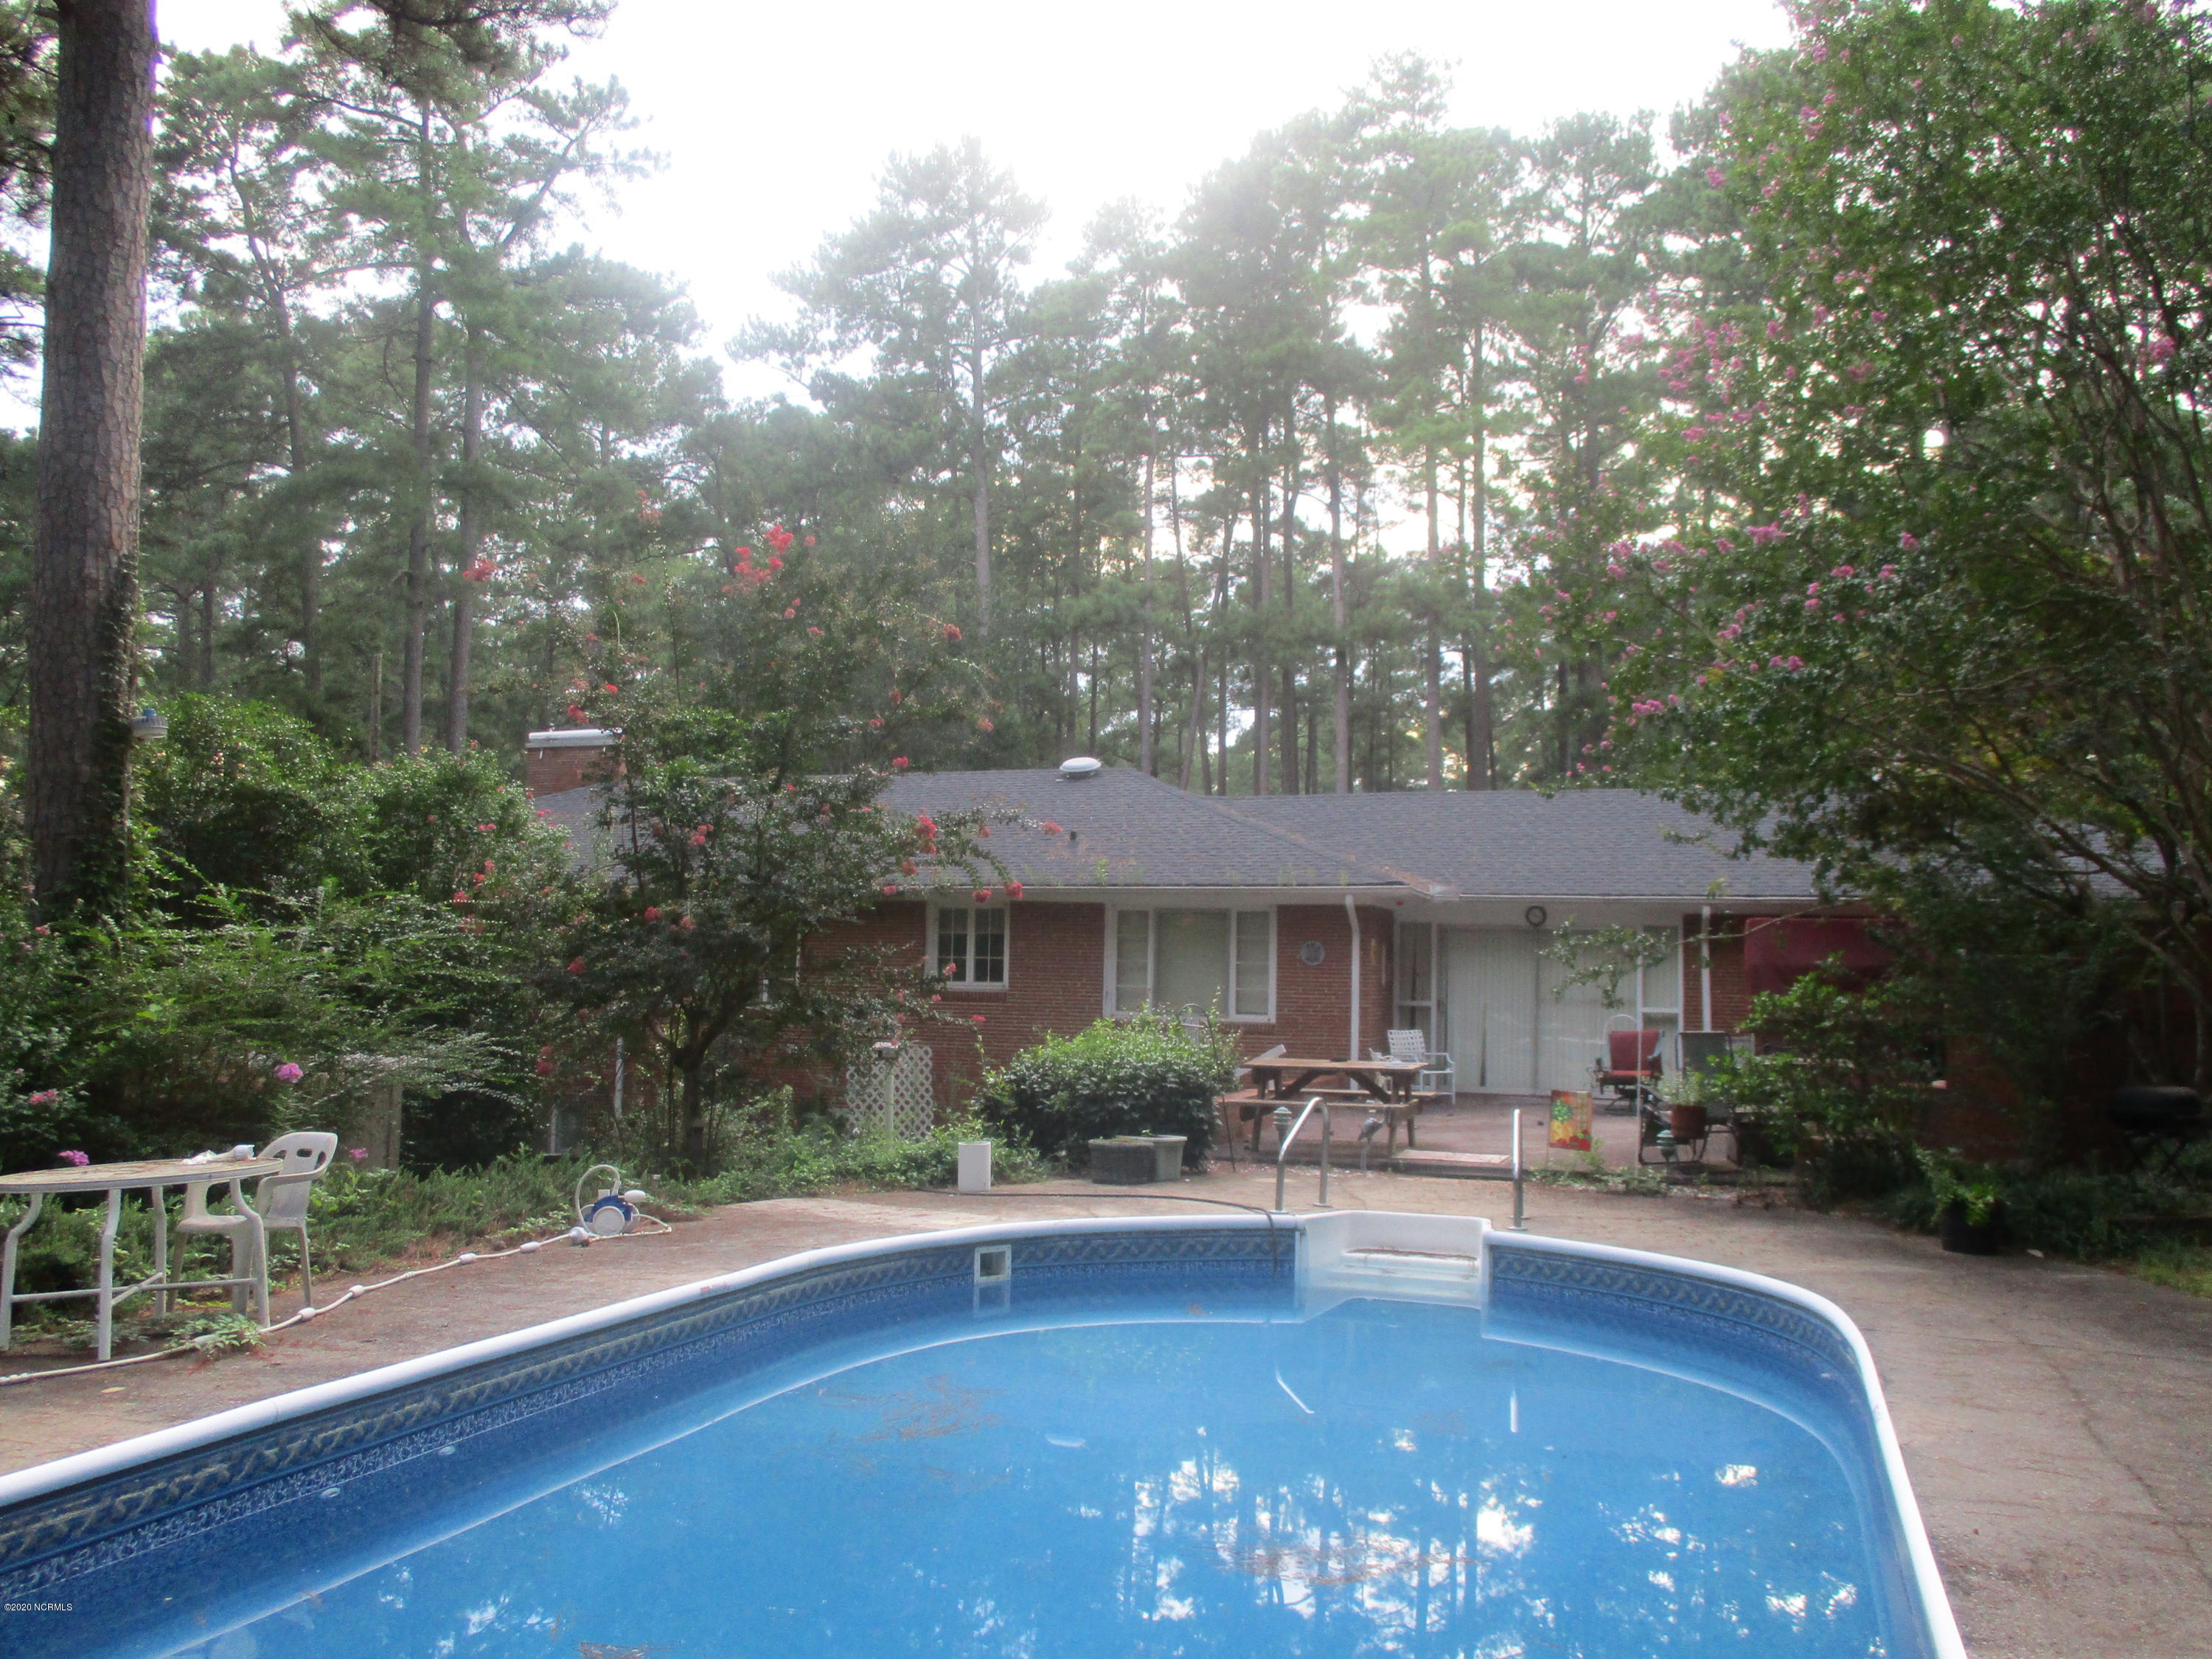 565 Valley Road, Southern Pines, North Carolina 28387, 3 Bedrooms Bedrooms, 14 Rooms Rooms,3 BathroomsBathrooms,Single family residence,For sale,Valley,100231103